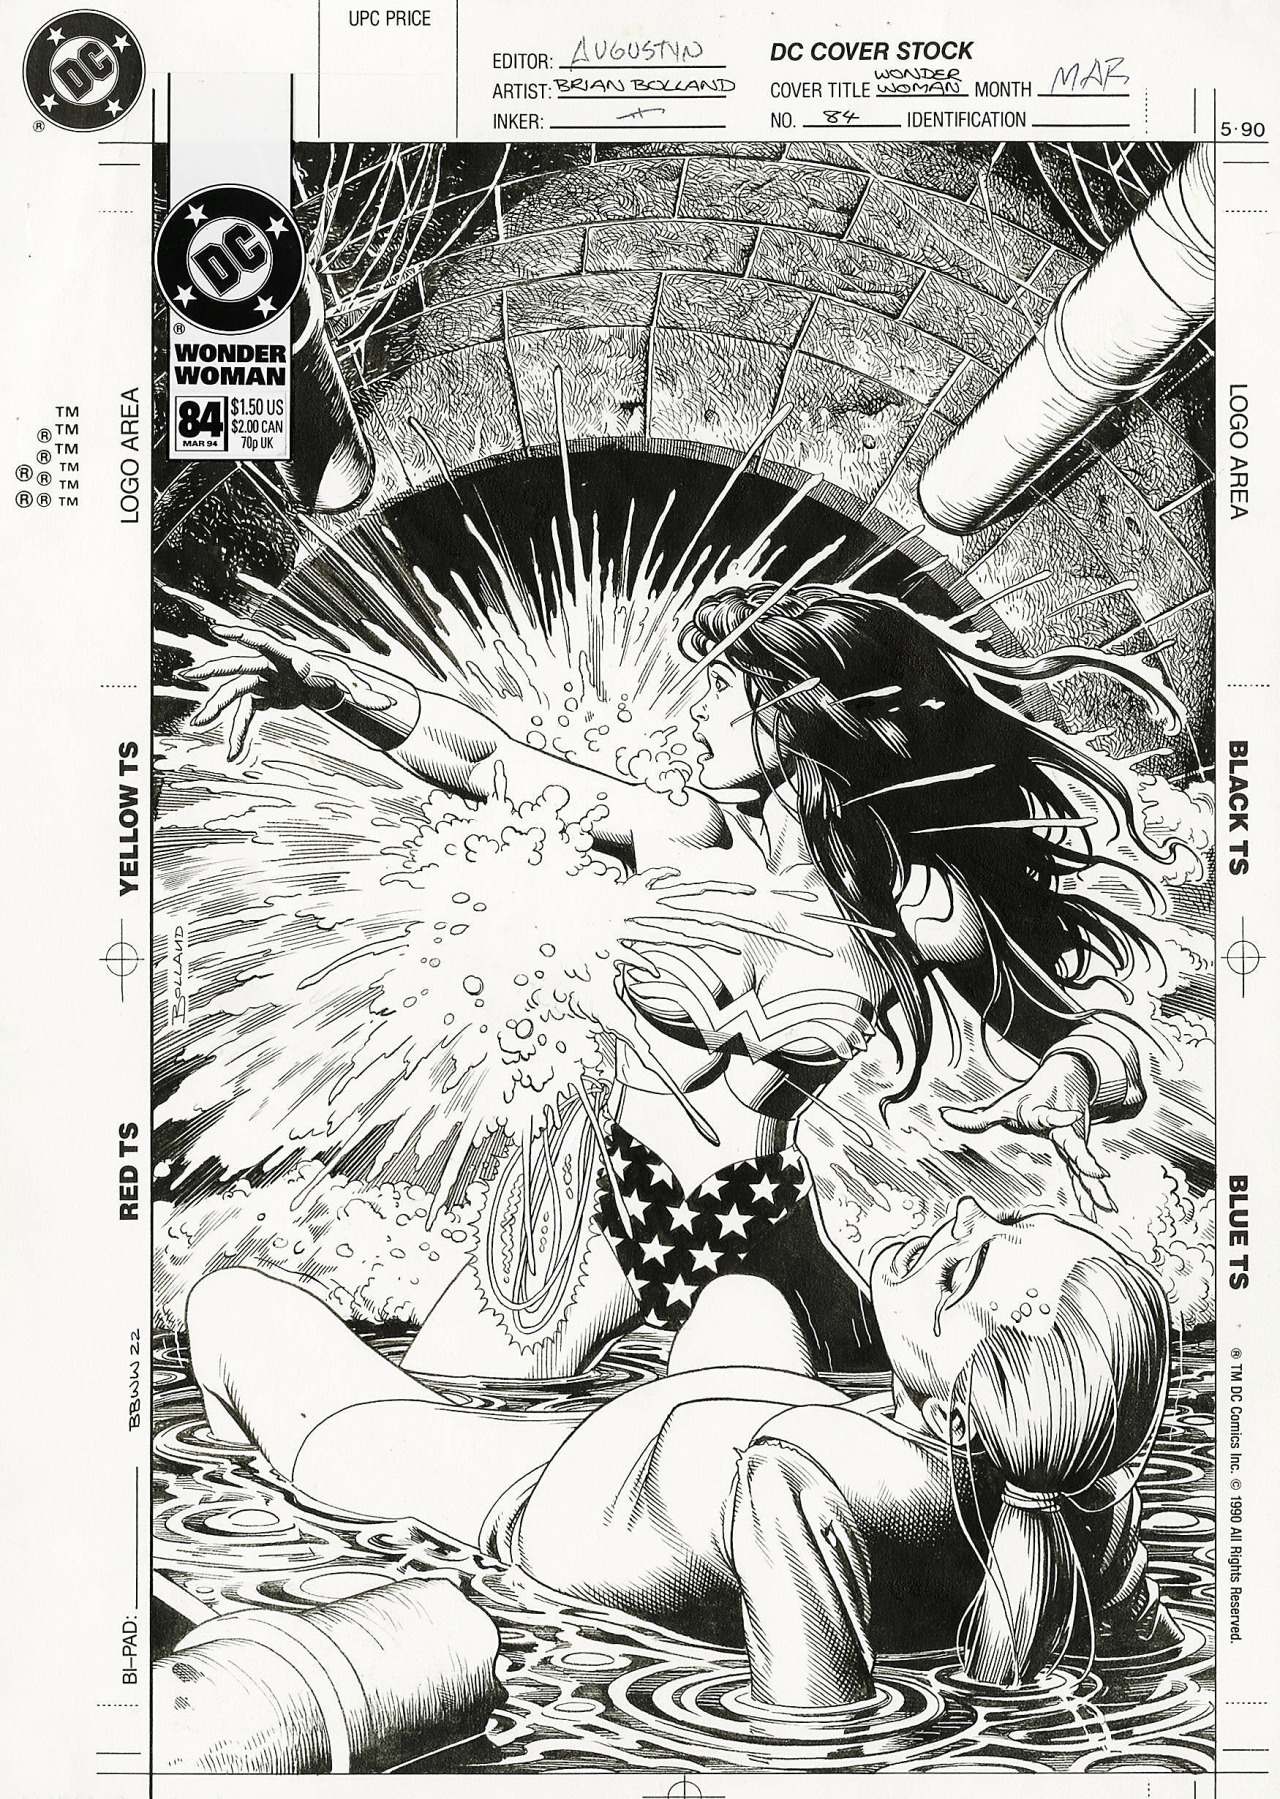 Original pencils, inked, and final cover art by Brian Bolland from Wonder Woman v2 #84, 1994 - 1